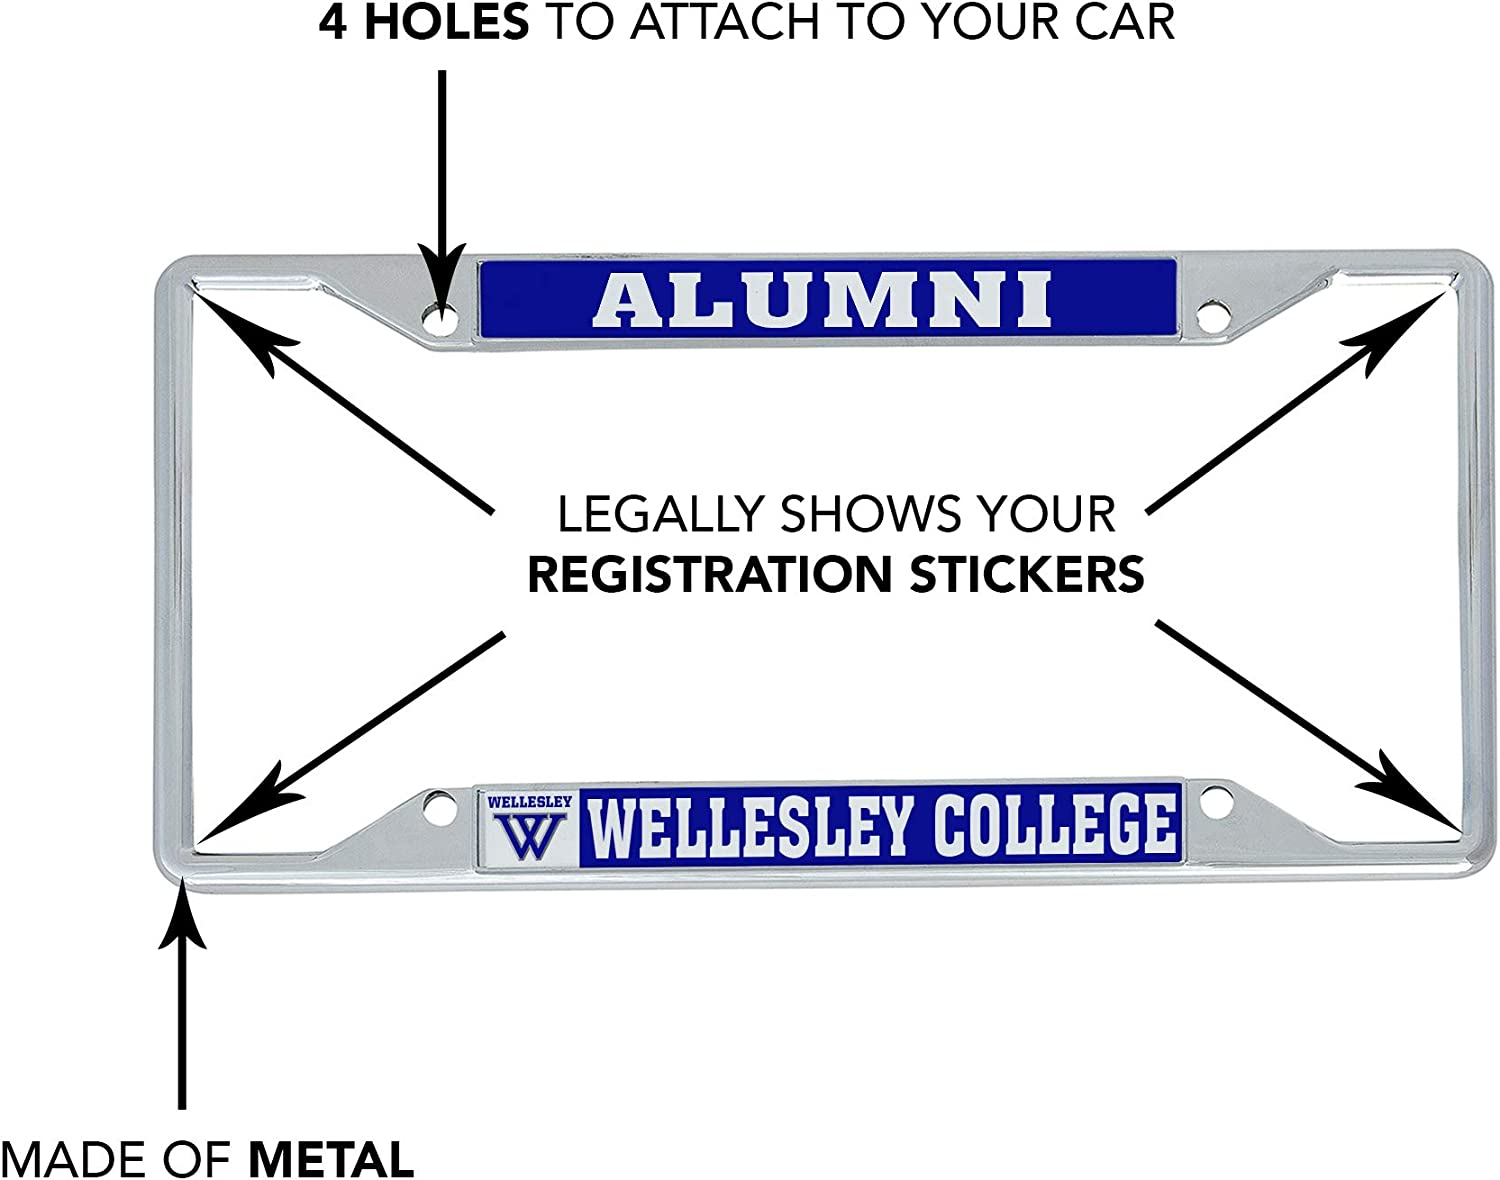 Alumni Desert Cactus Wellesley College Blue NCAA Metal License Plate Frame for Front or Back of Car Officially Licensed